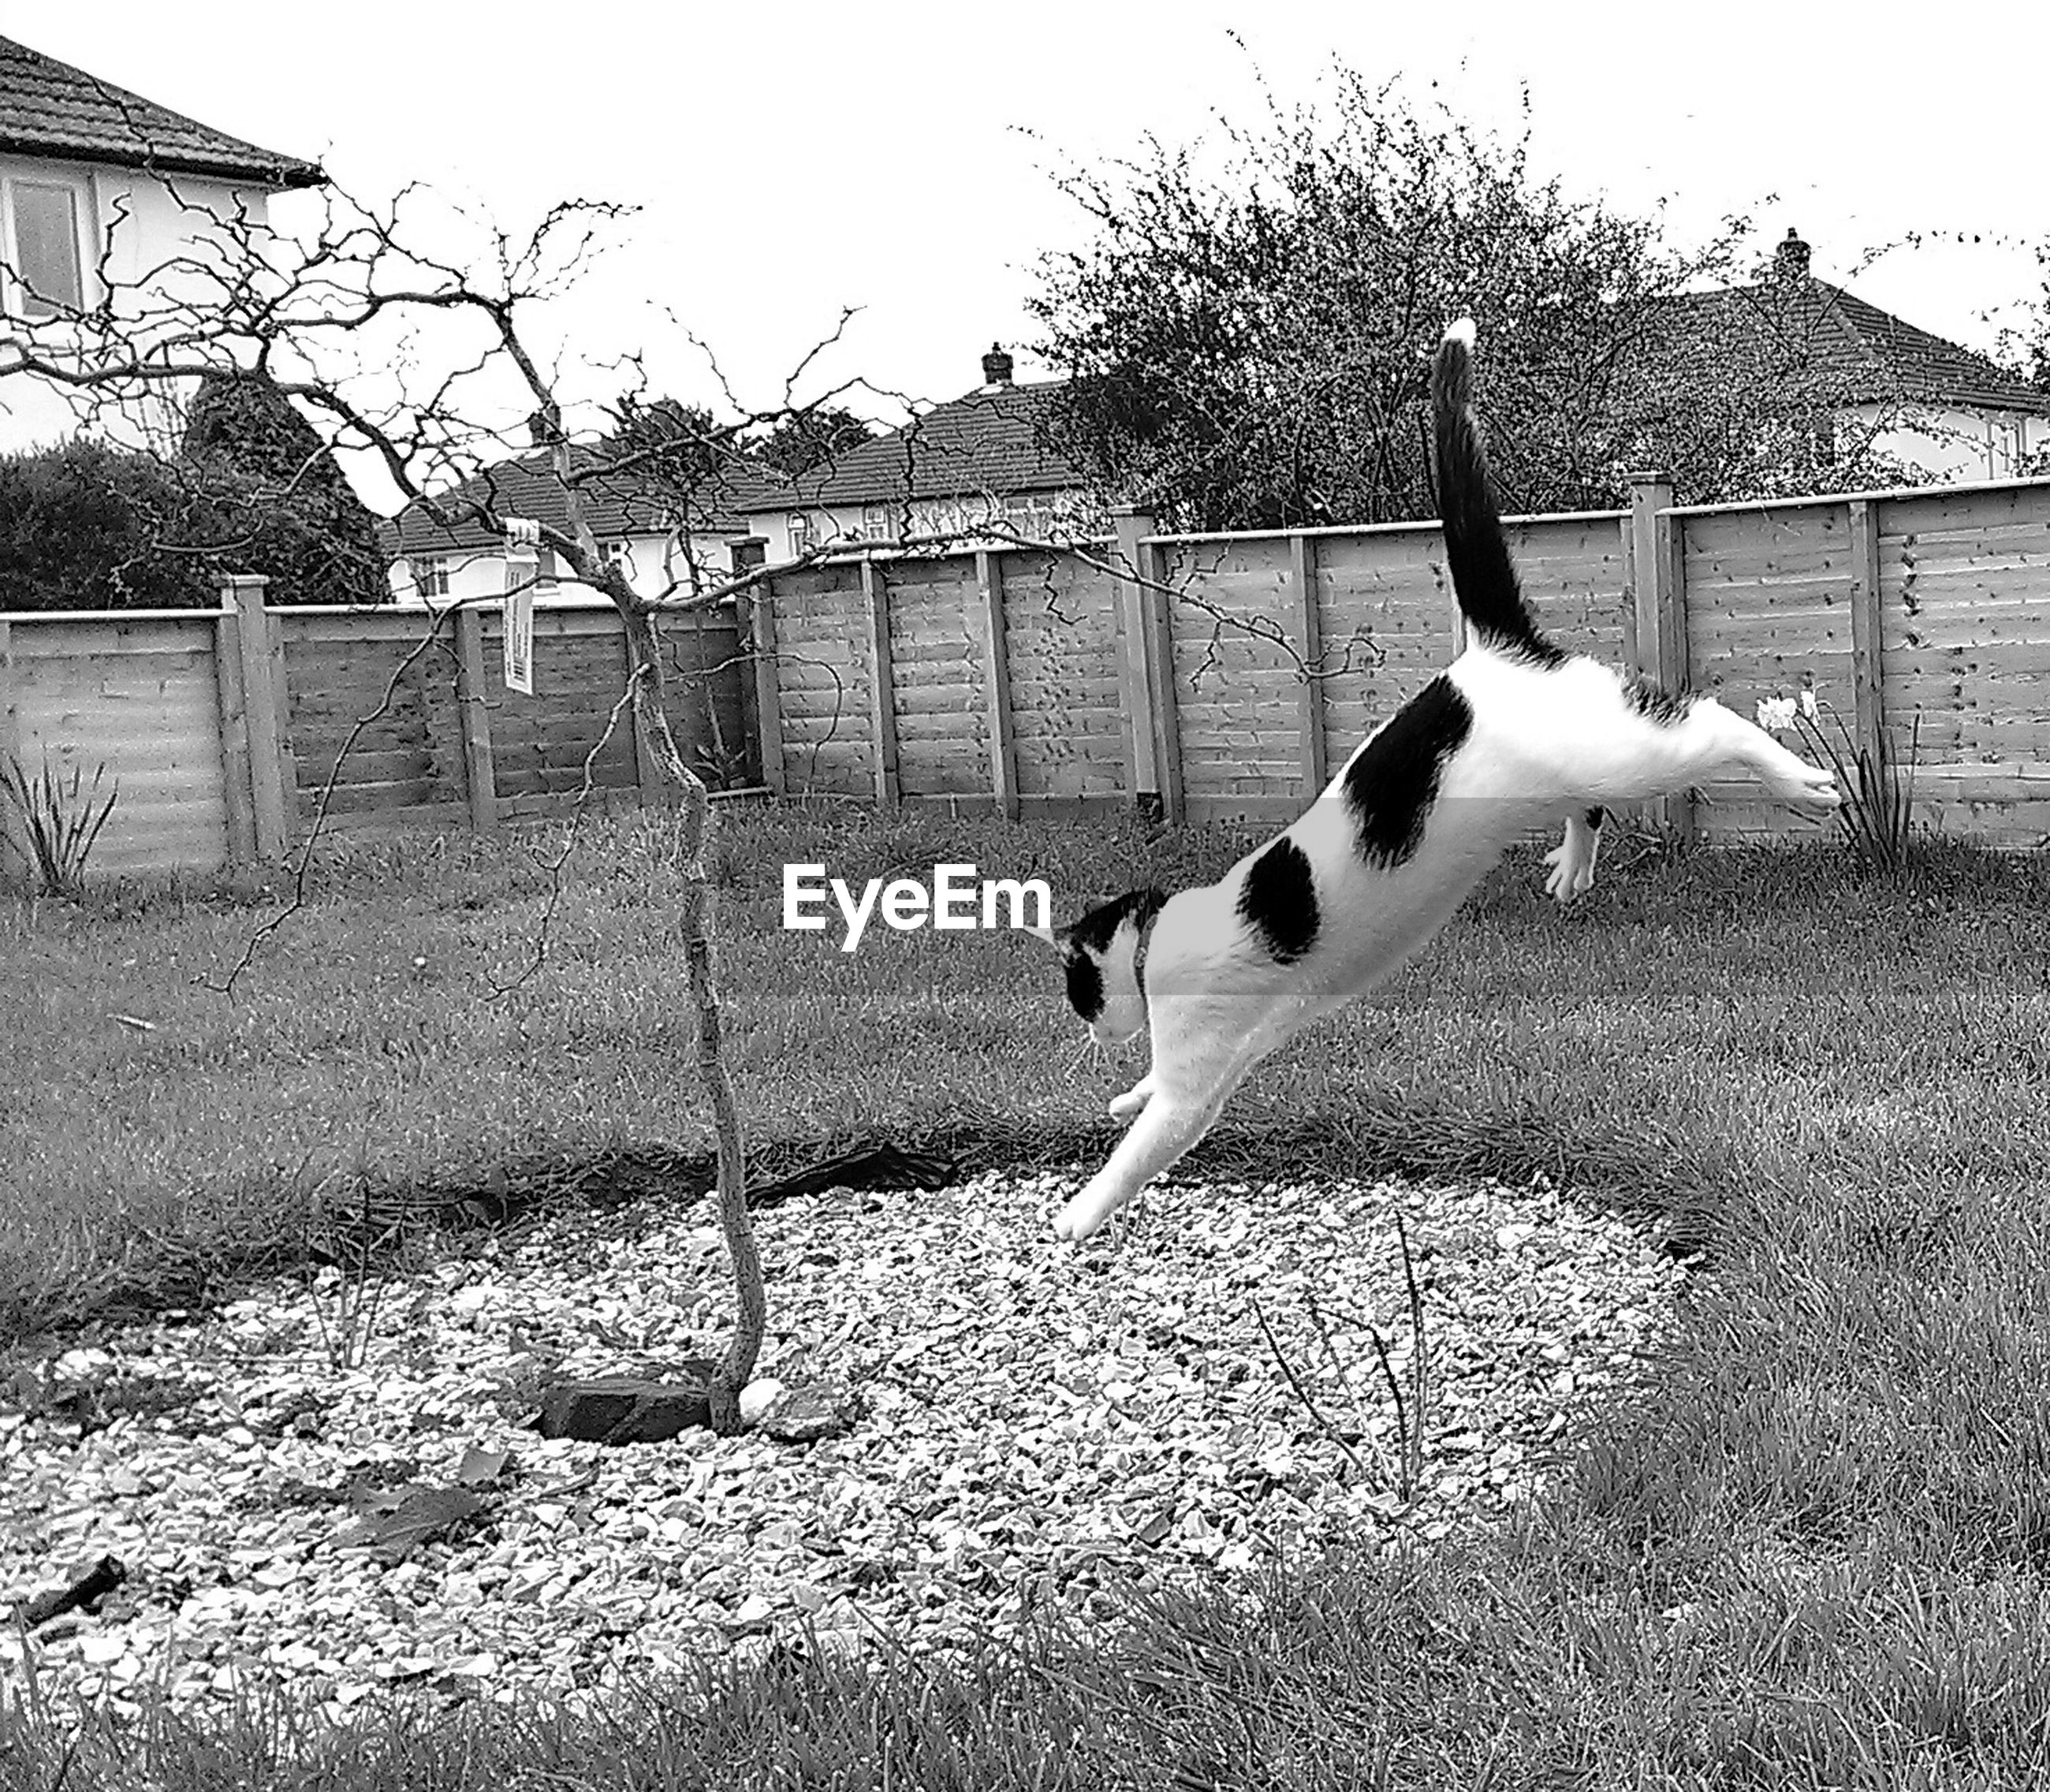 Cat jumping over grassy field in yard against clear sky